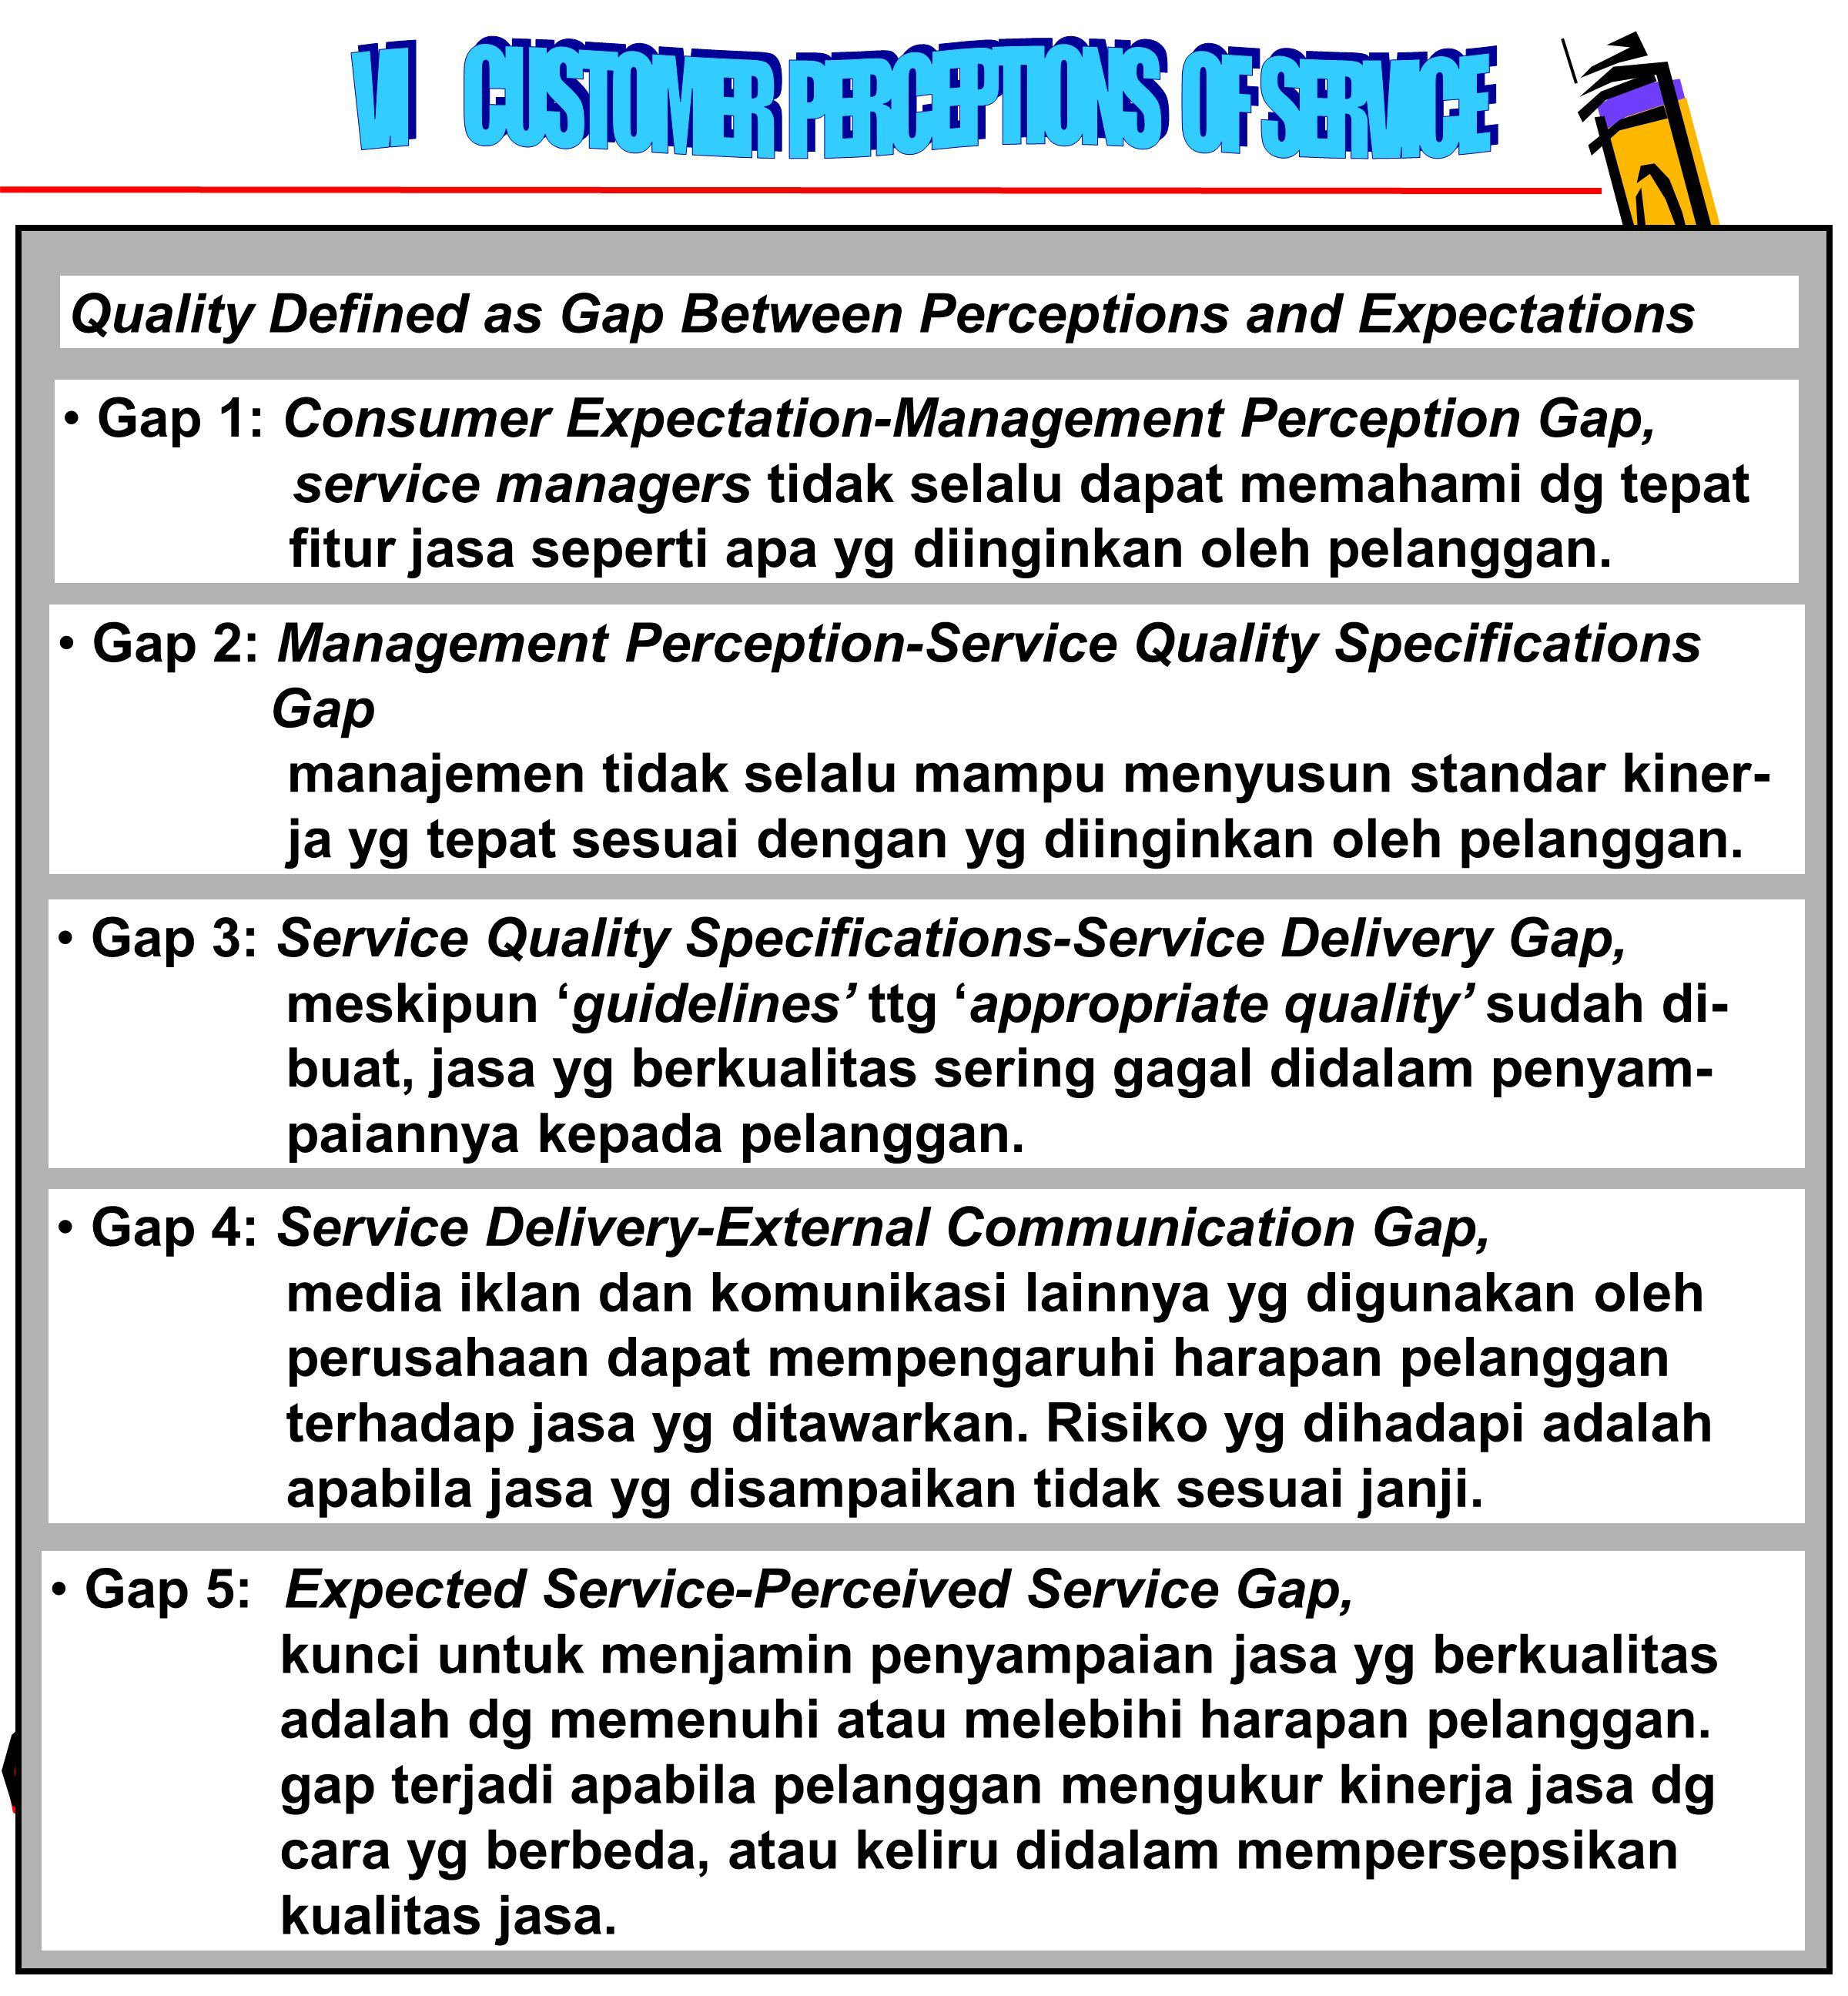 VI CUSTOMER PERCEPTIONS OF SERVICE